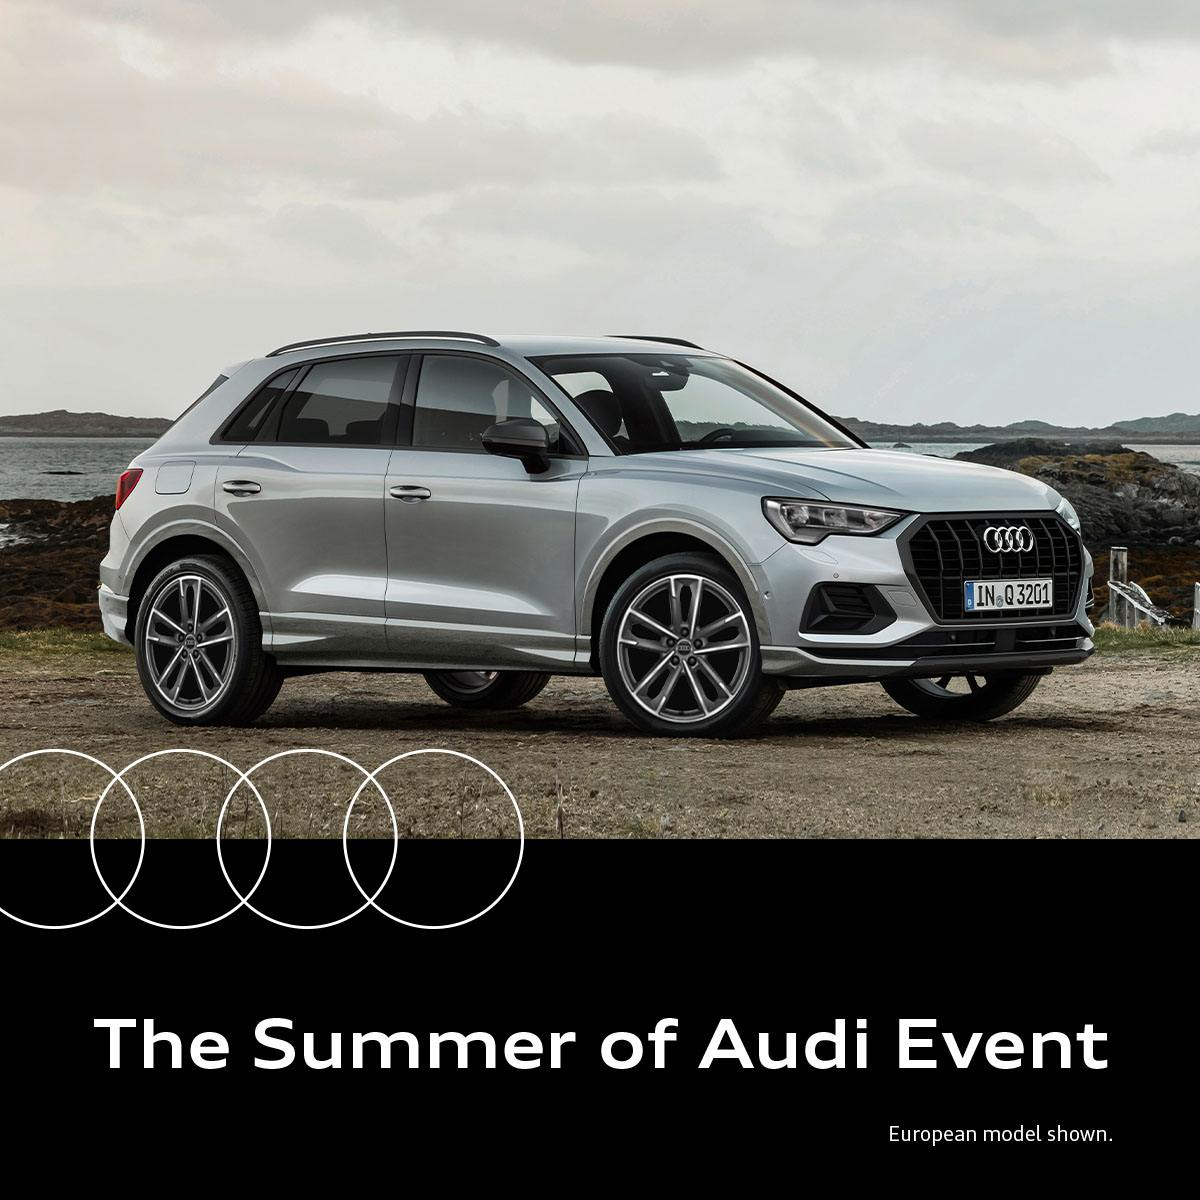 The Summer of Audi Event – Q3